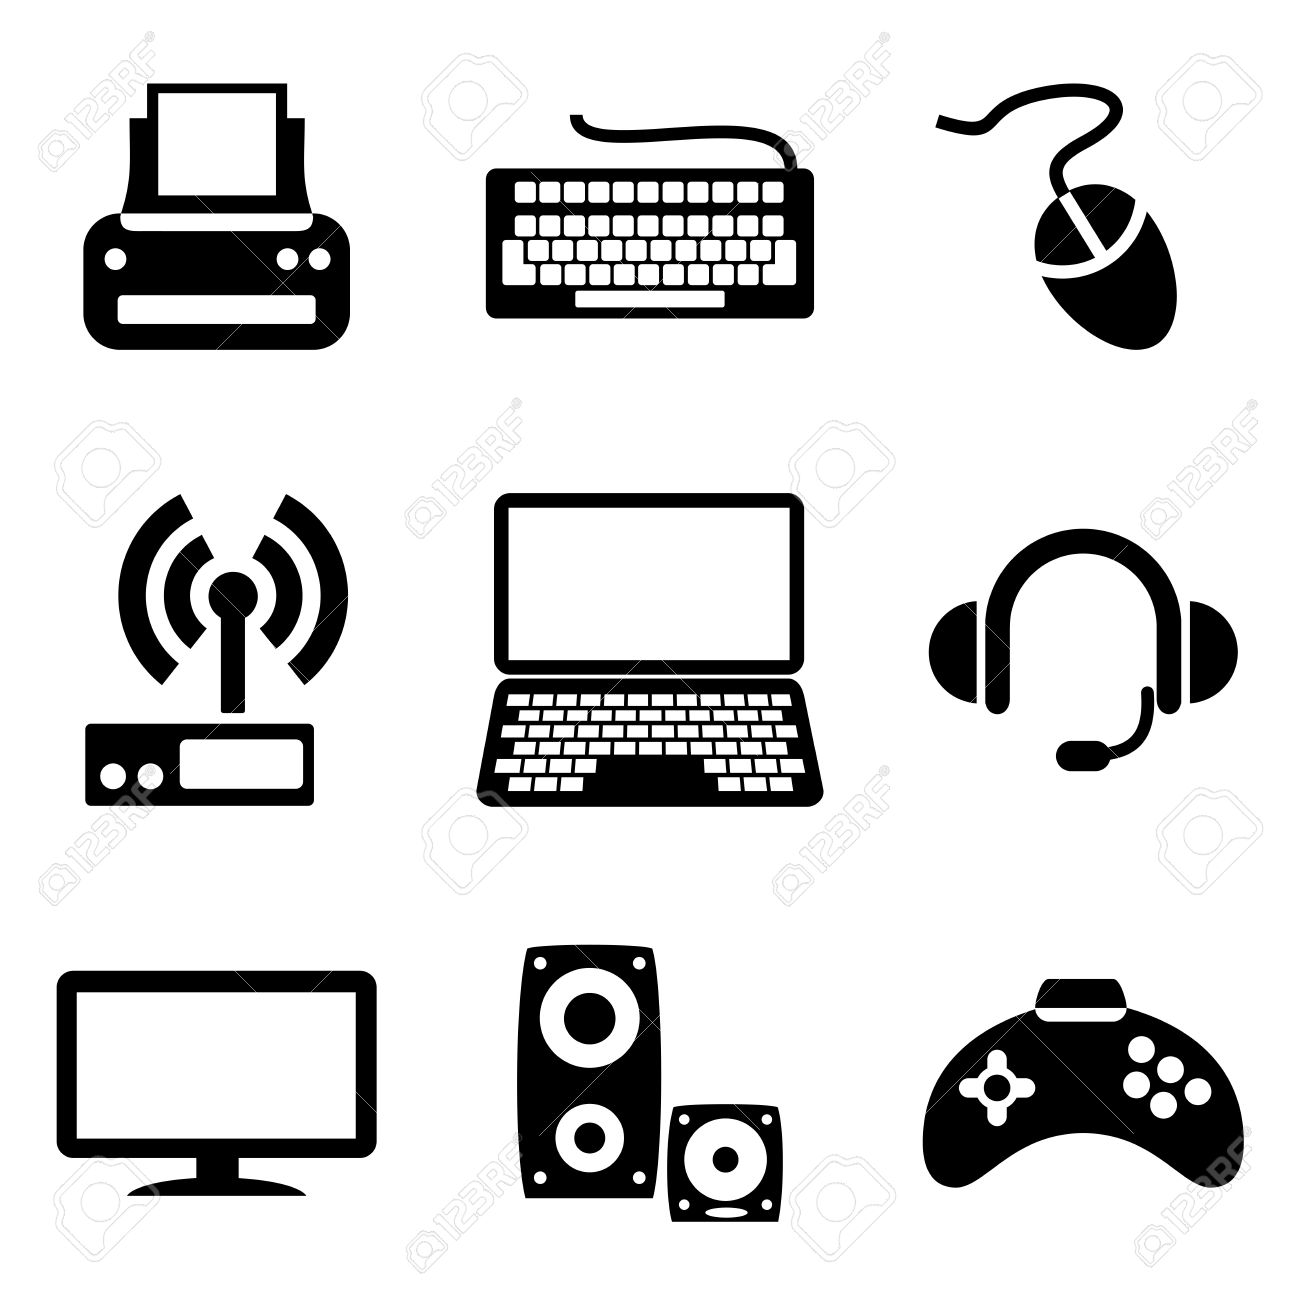 Black Computer Icon Png Vector - set computer icons of